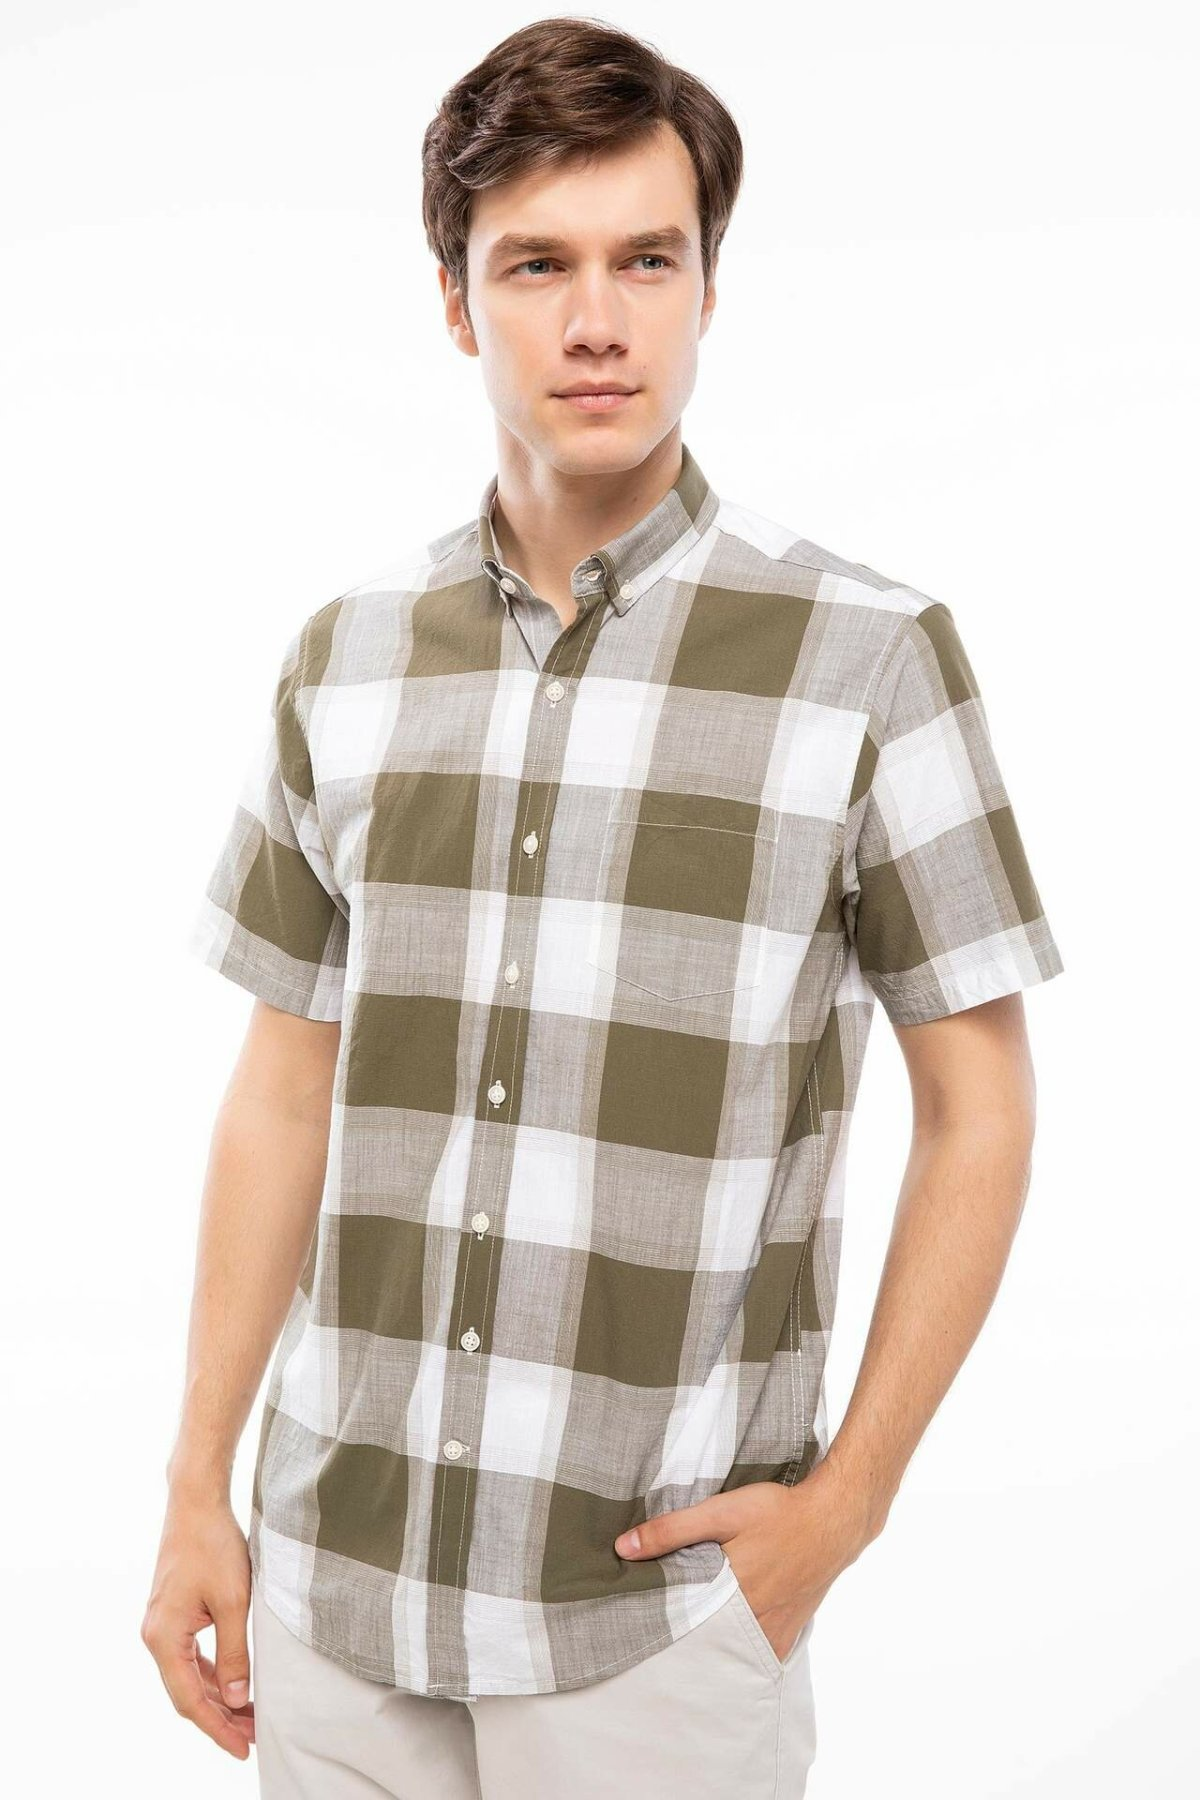 DeFacto Men Plaid Shirts Short Sleeve Casual Shirts Mens Fashion Lapel Collar Casual Cotton Shirt - I3821AZ18SM